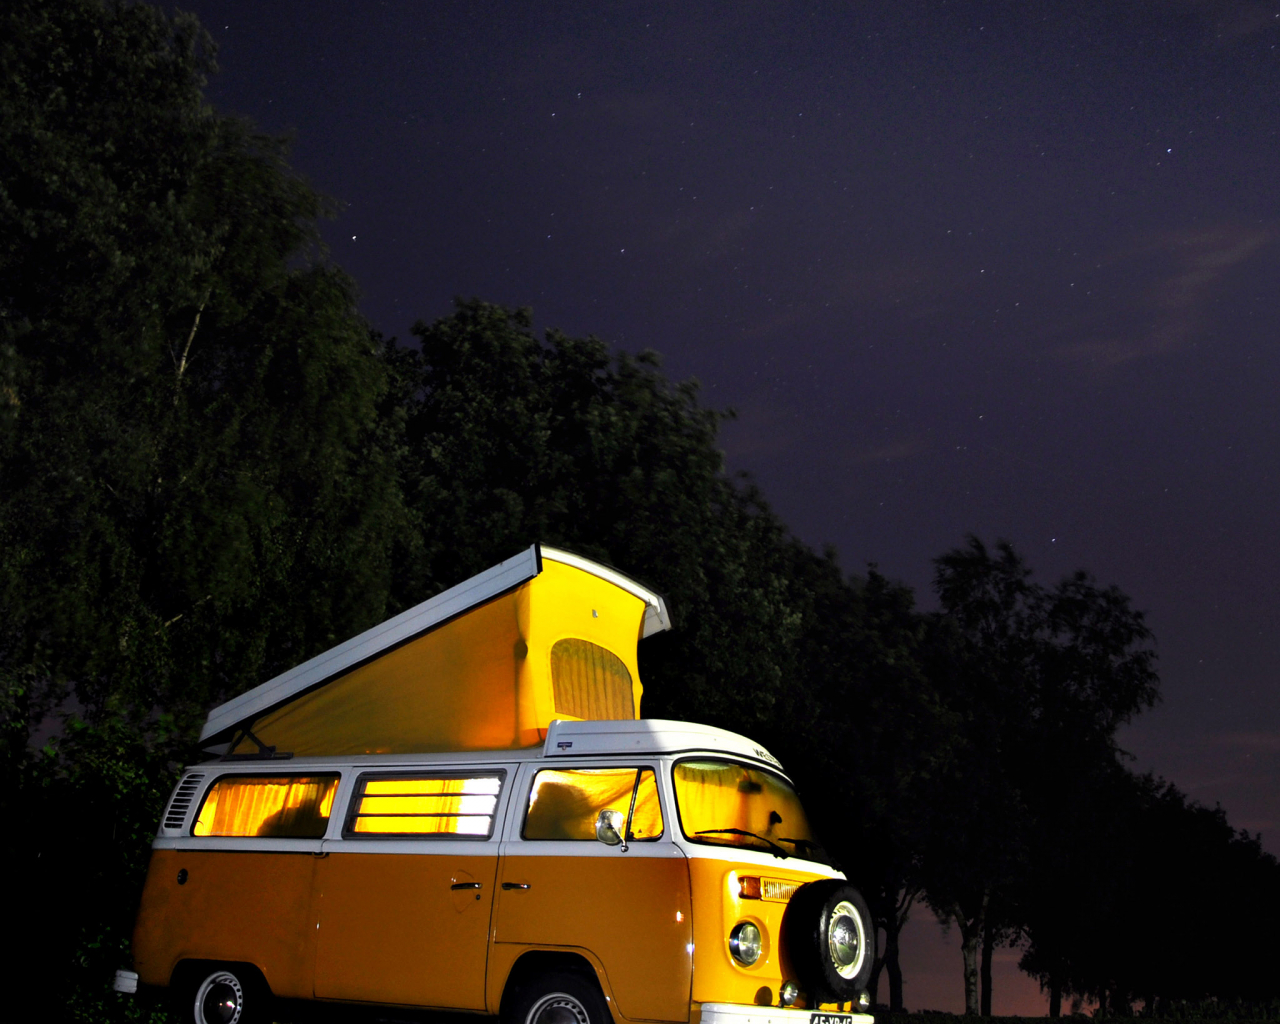 Free Download Freeios7 Car Camping Parallax Hd Iphone Ipad Wallpaper 2048x2048 For Your Desktop Mobile Tablet Explore 48 Camping Wallpaper Christmas Camping Wallpapers Camping Wallpaper Desktop Wallpaper Camping